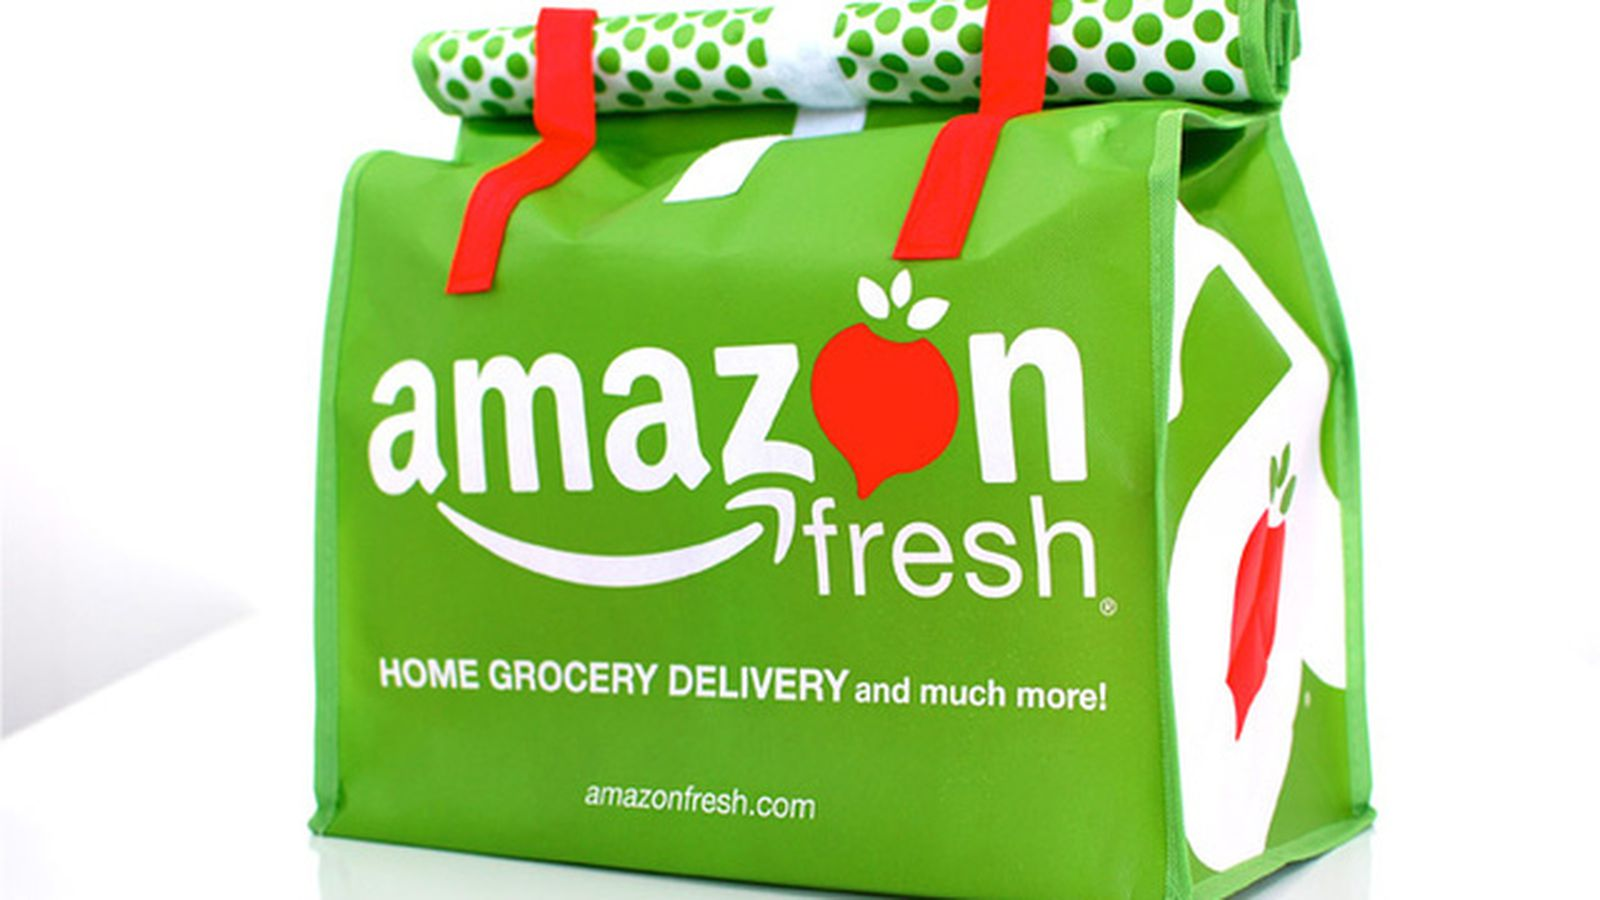 alone with amazonfresh in the city the verge